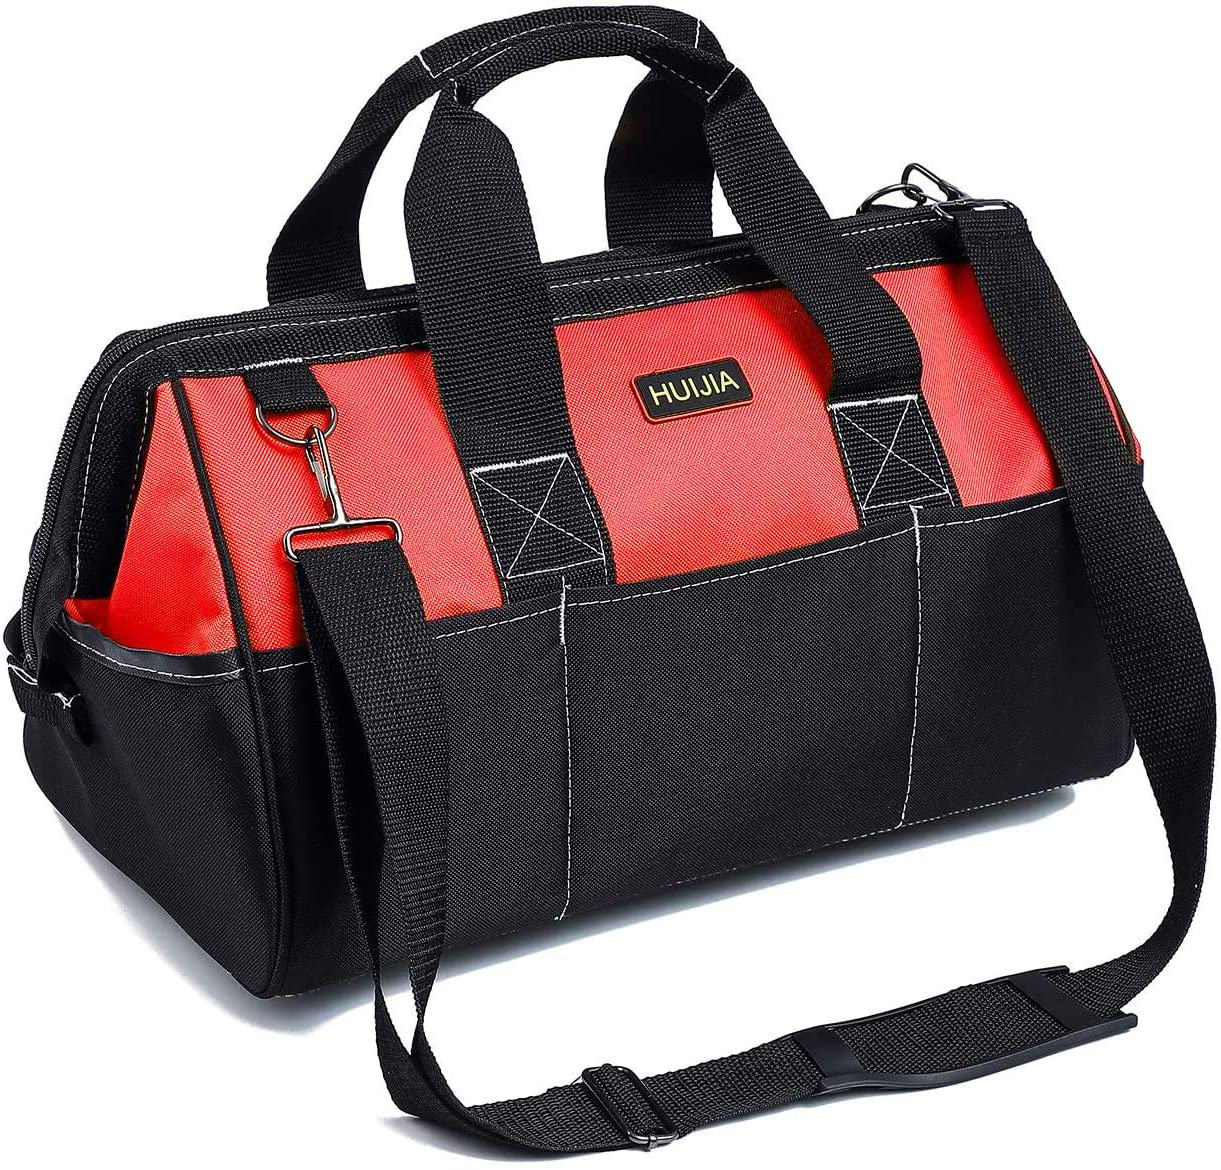 HUIJIA 17-inch Tool Organizer Bags Manufacturer Seattle Mall OFFicial shop Wide Resistant Mouth He Water